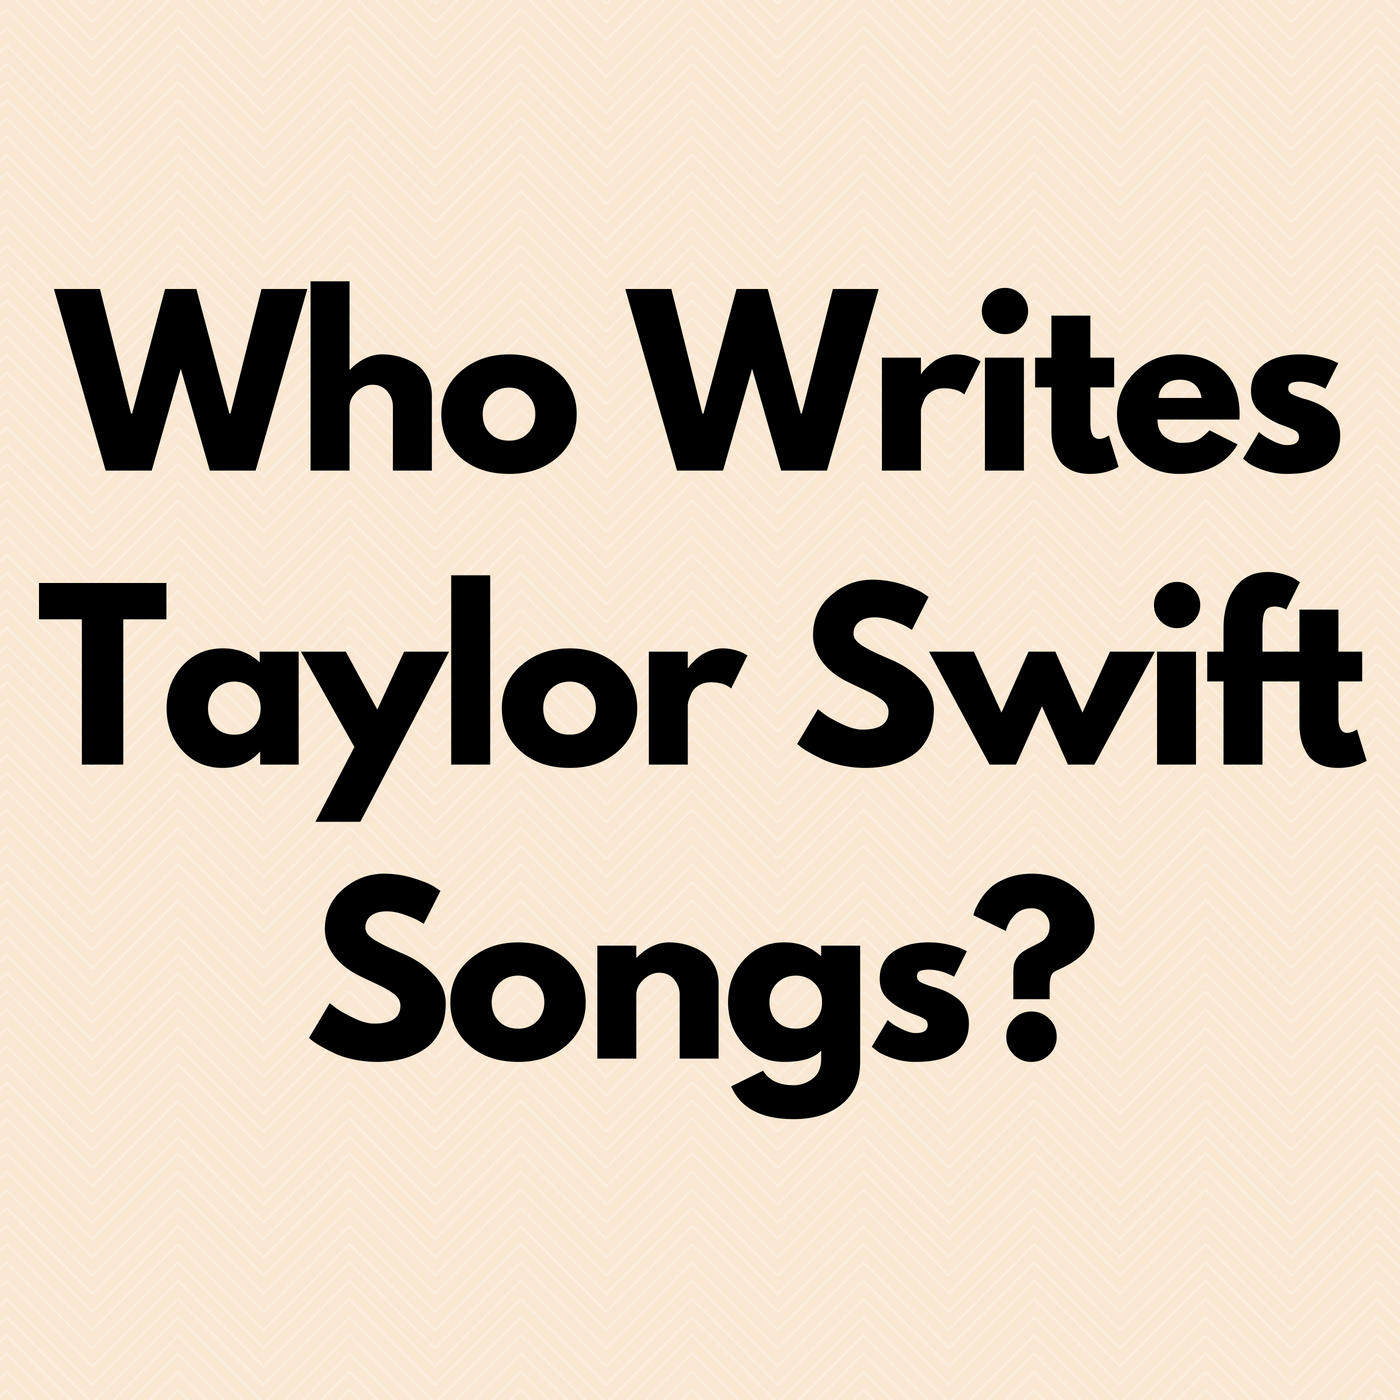 Who writes taylor swift songs.png